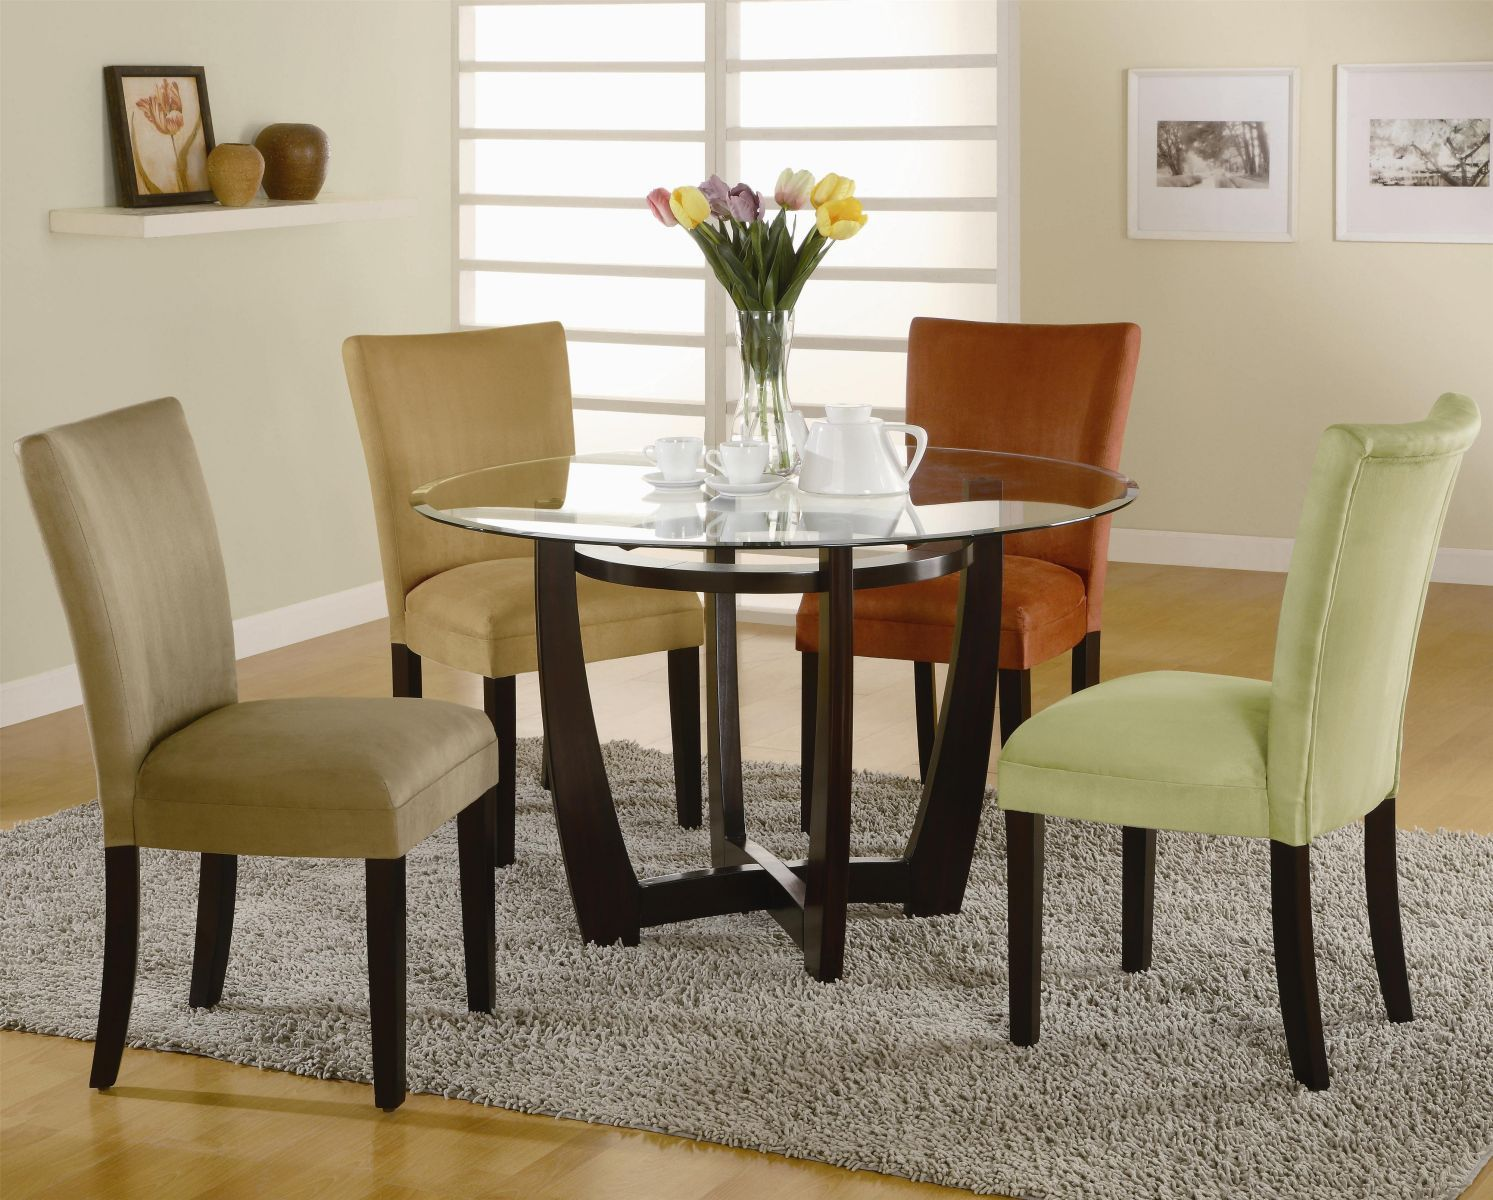 Coaster Dining Room Set Upon Request Call (631) 742-1351 for Best Price Guarantee Dinette Sets New York , Dinette Sets Long Island , Dining Room Sets New York , Dining Room Sets Long Island, Dining Room Chairs Long Island The Bloomfield collection will giv